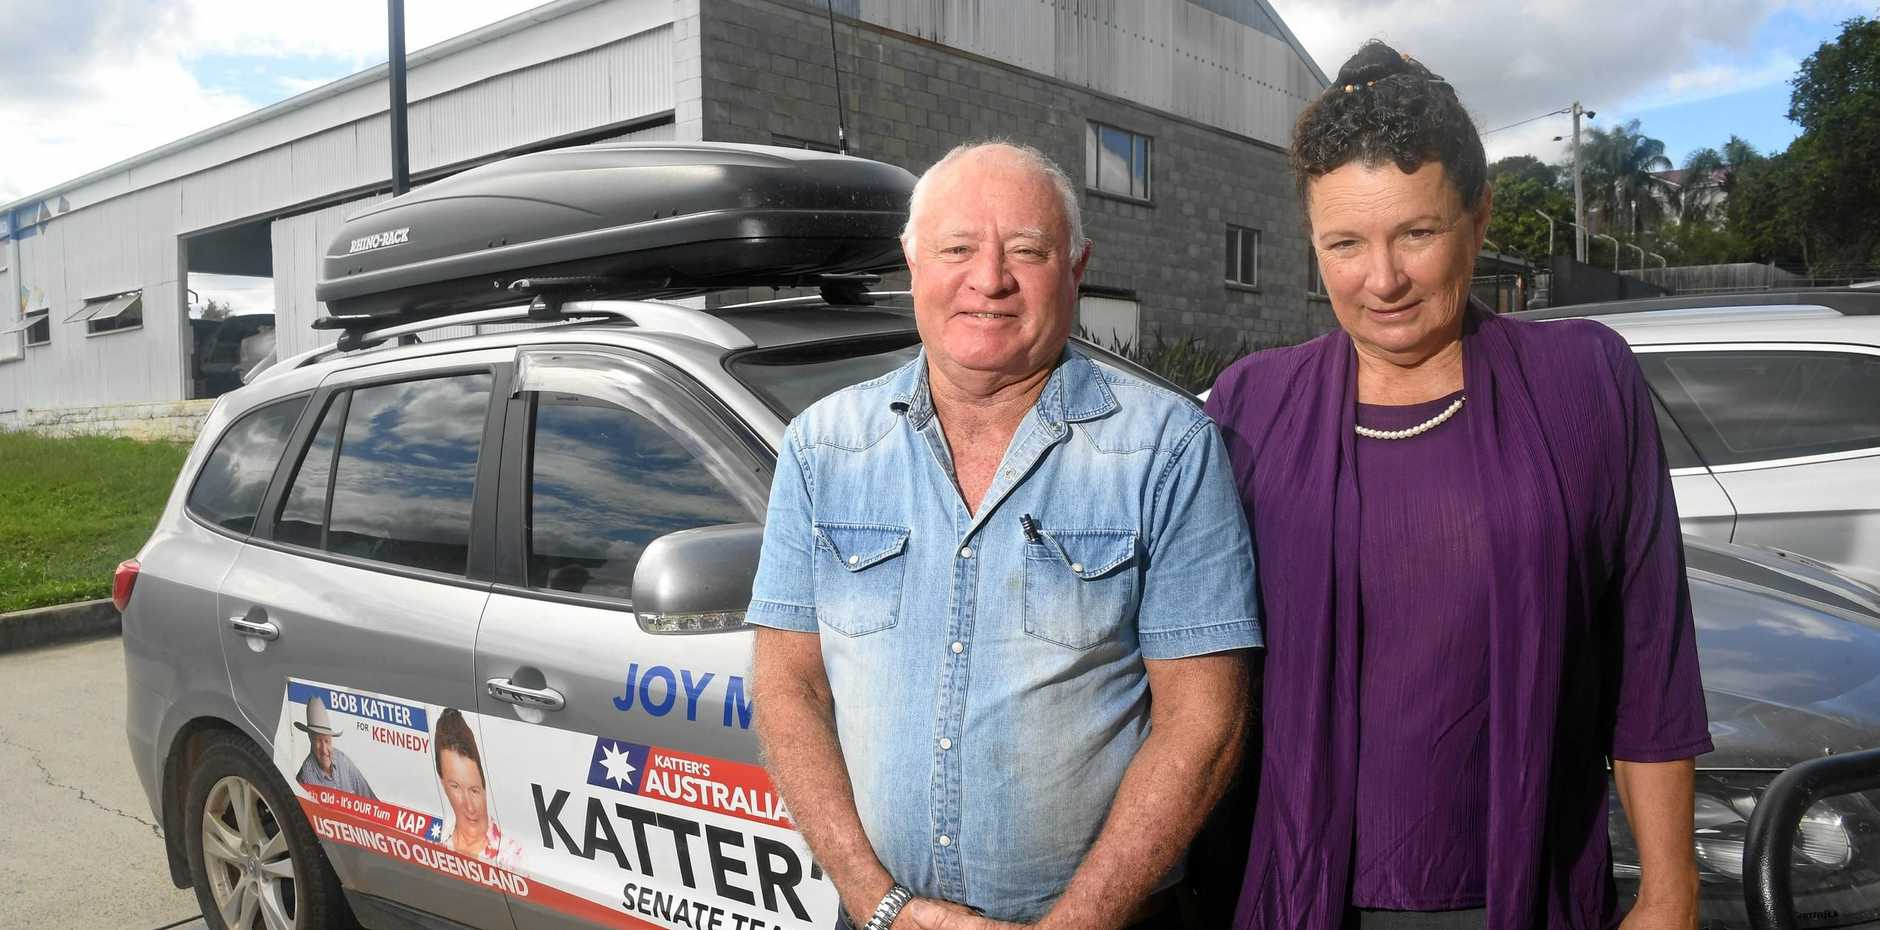 Katter's Australia Party Queensland Senate team candidate Joy Marriott (right) with supporter Alan Webb.